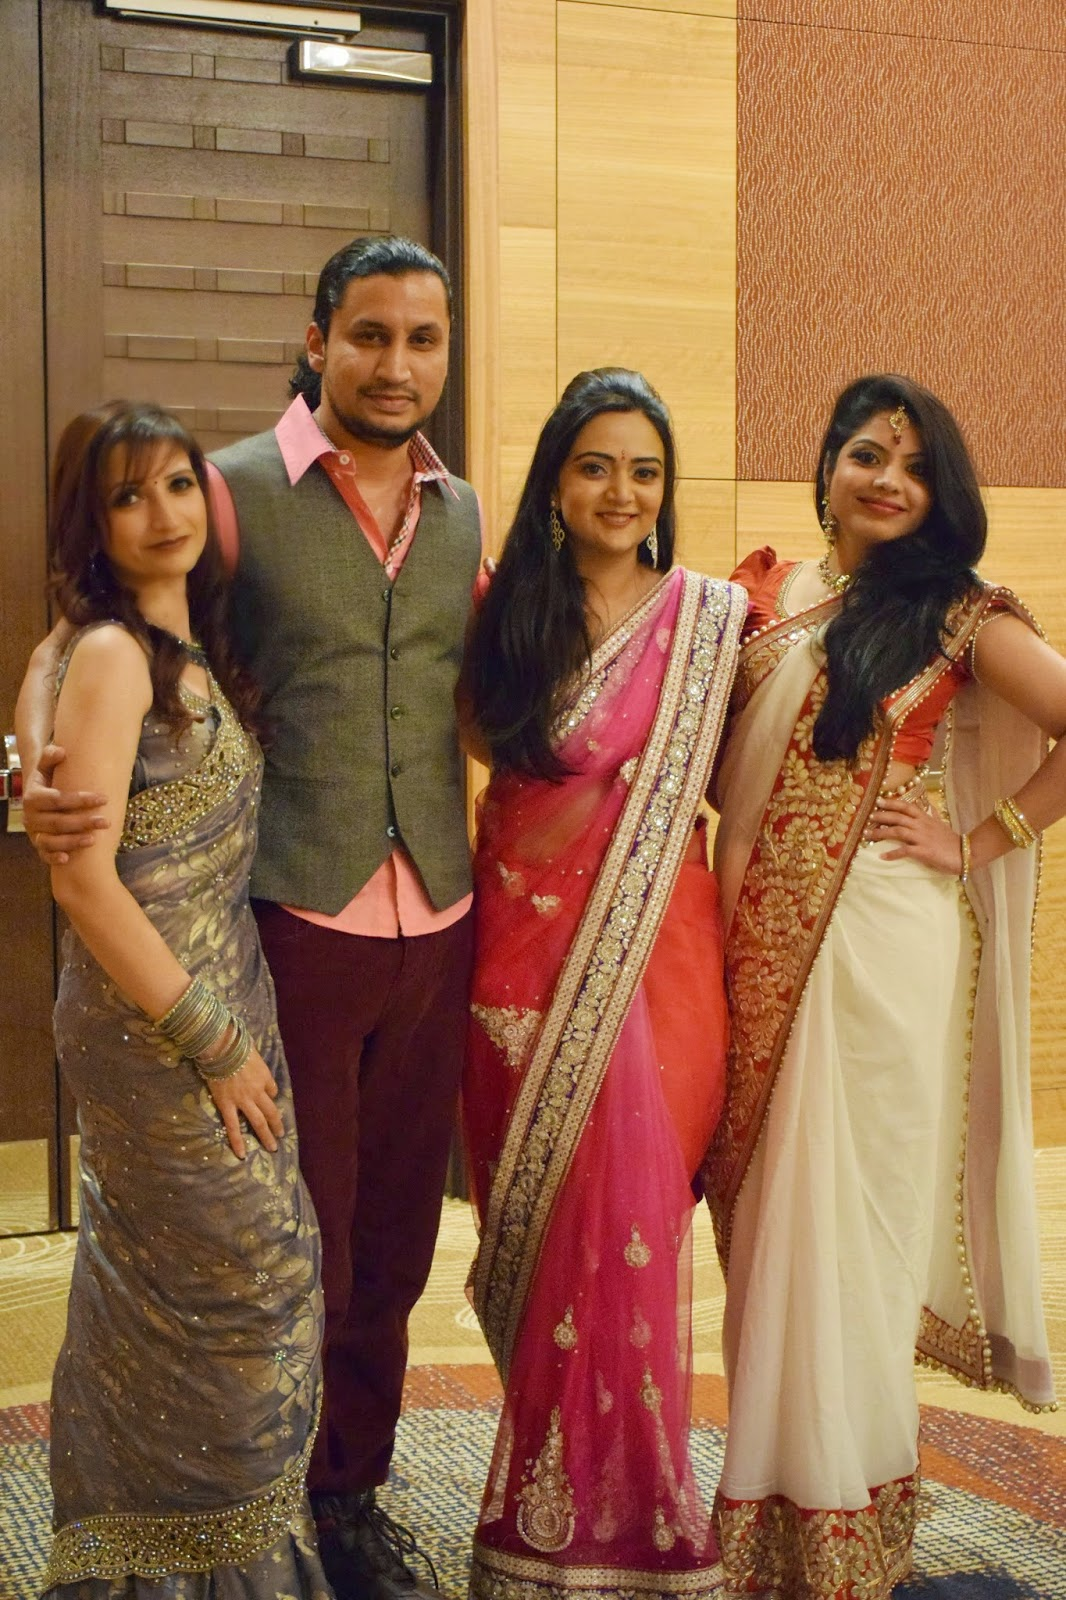 Ananya with her friends,Ananya in Sari, Seattle Fashion show, Hyatt Seattle Fashion Show, Authentic Indian wear, Fashion show in Seattle, Seattle Desi Fashion Show